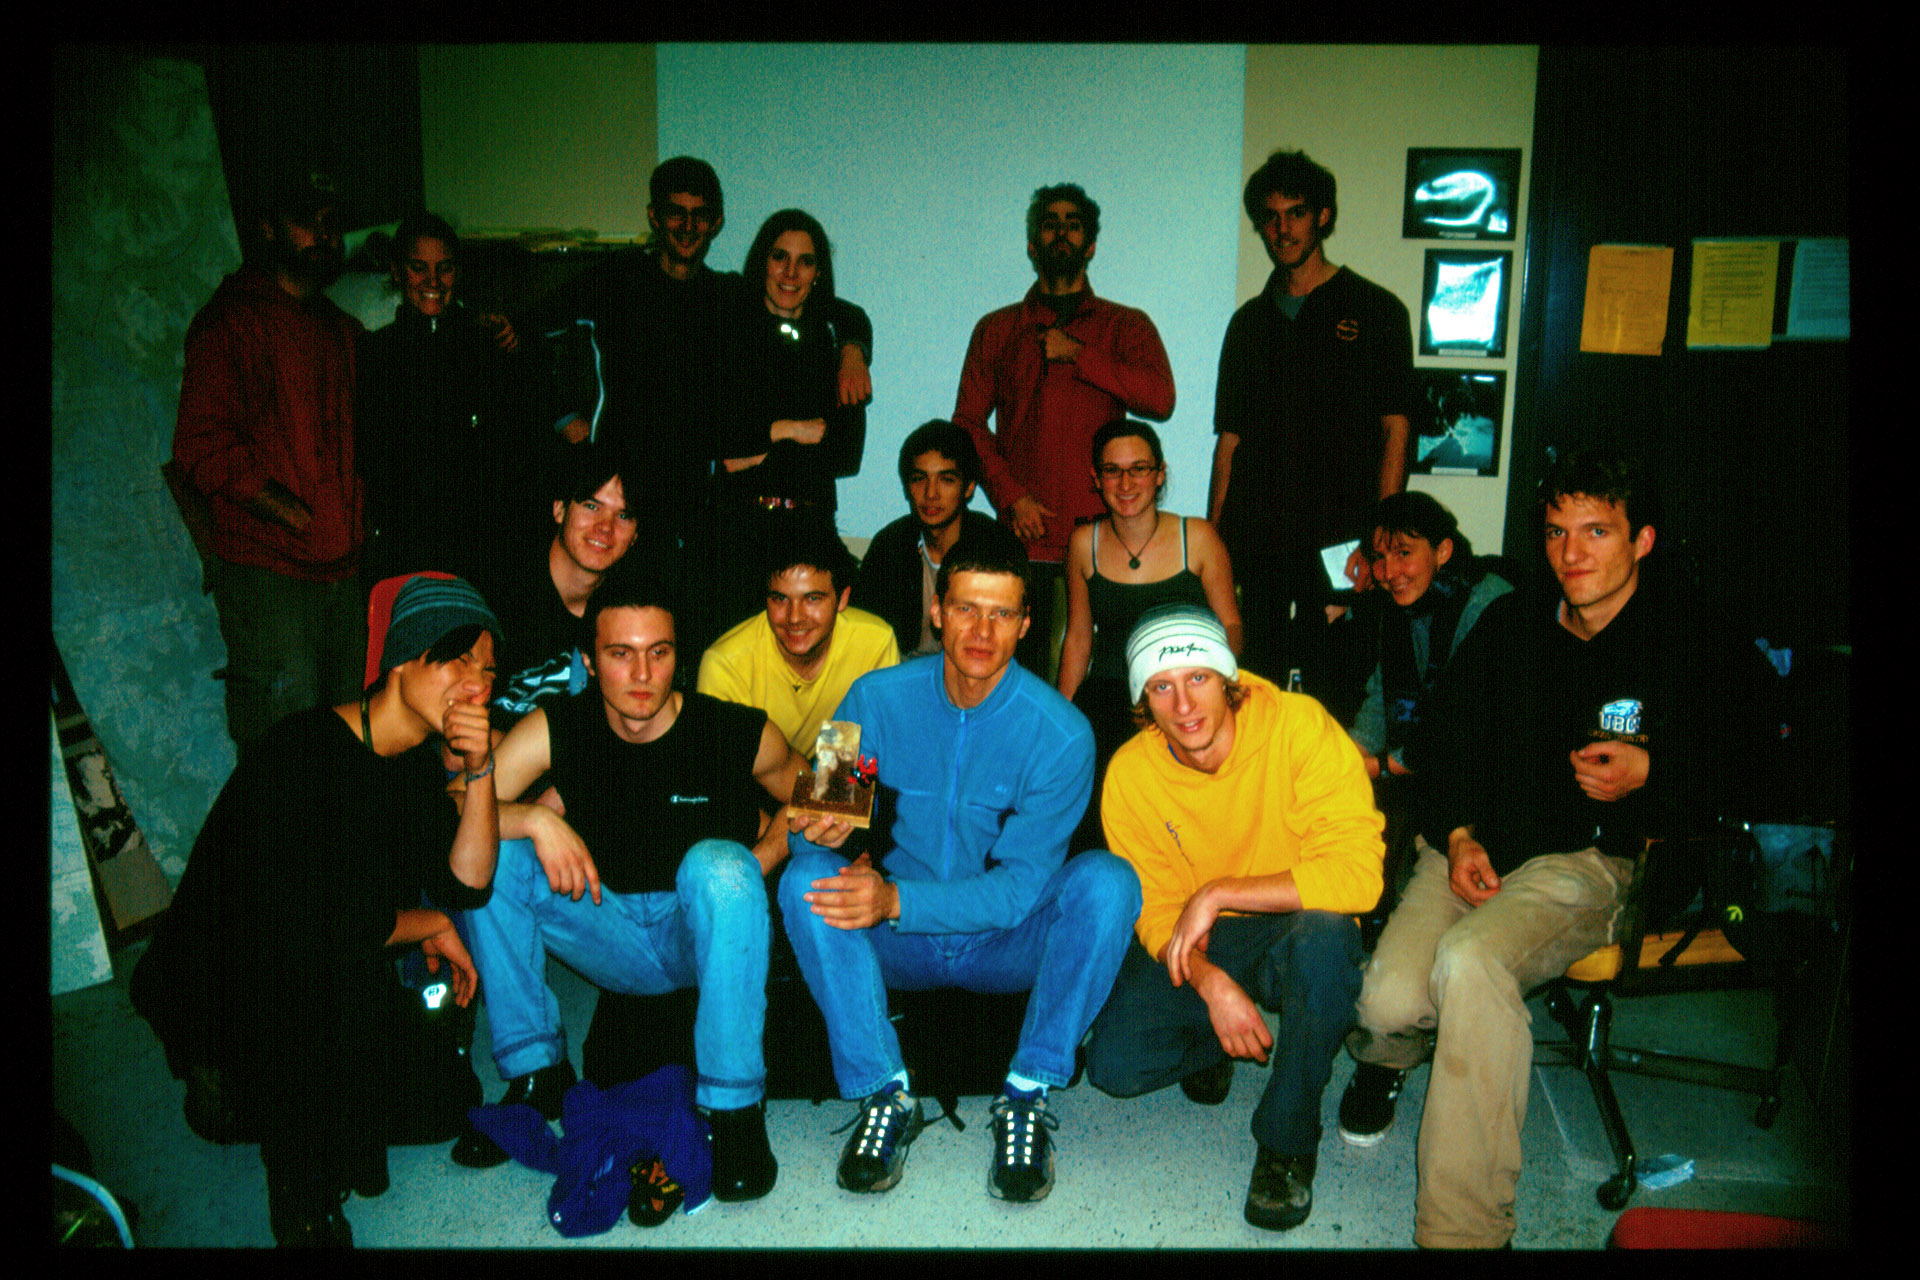 Comp 2 participants. Oct 2004.